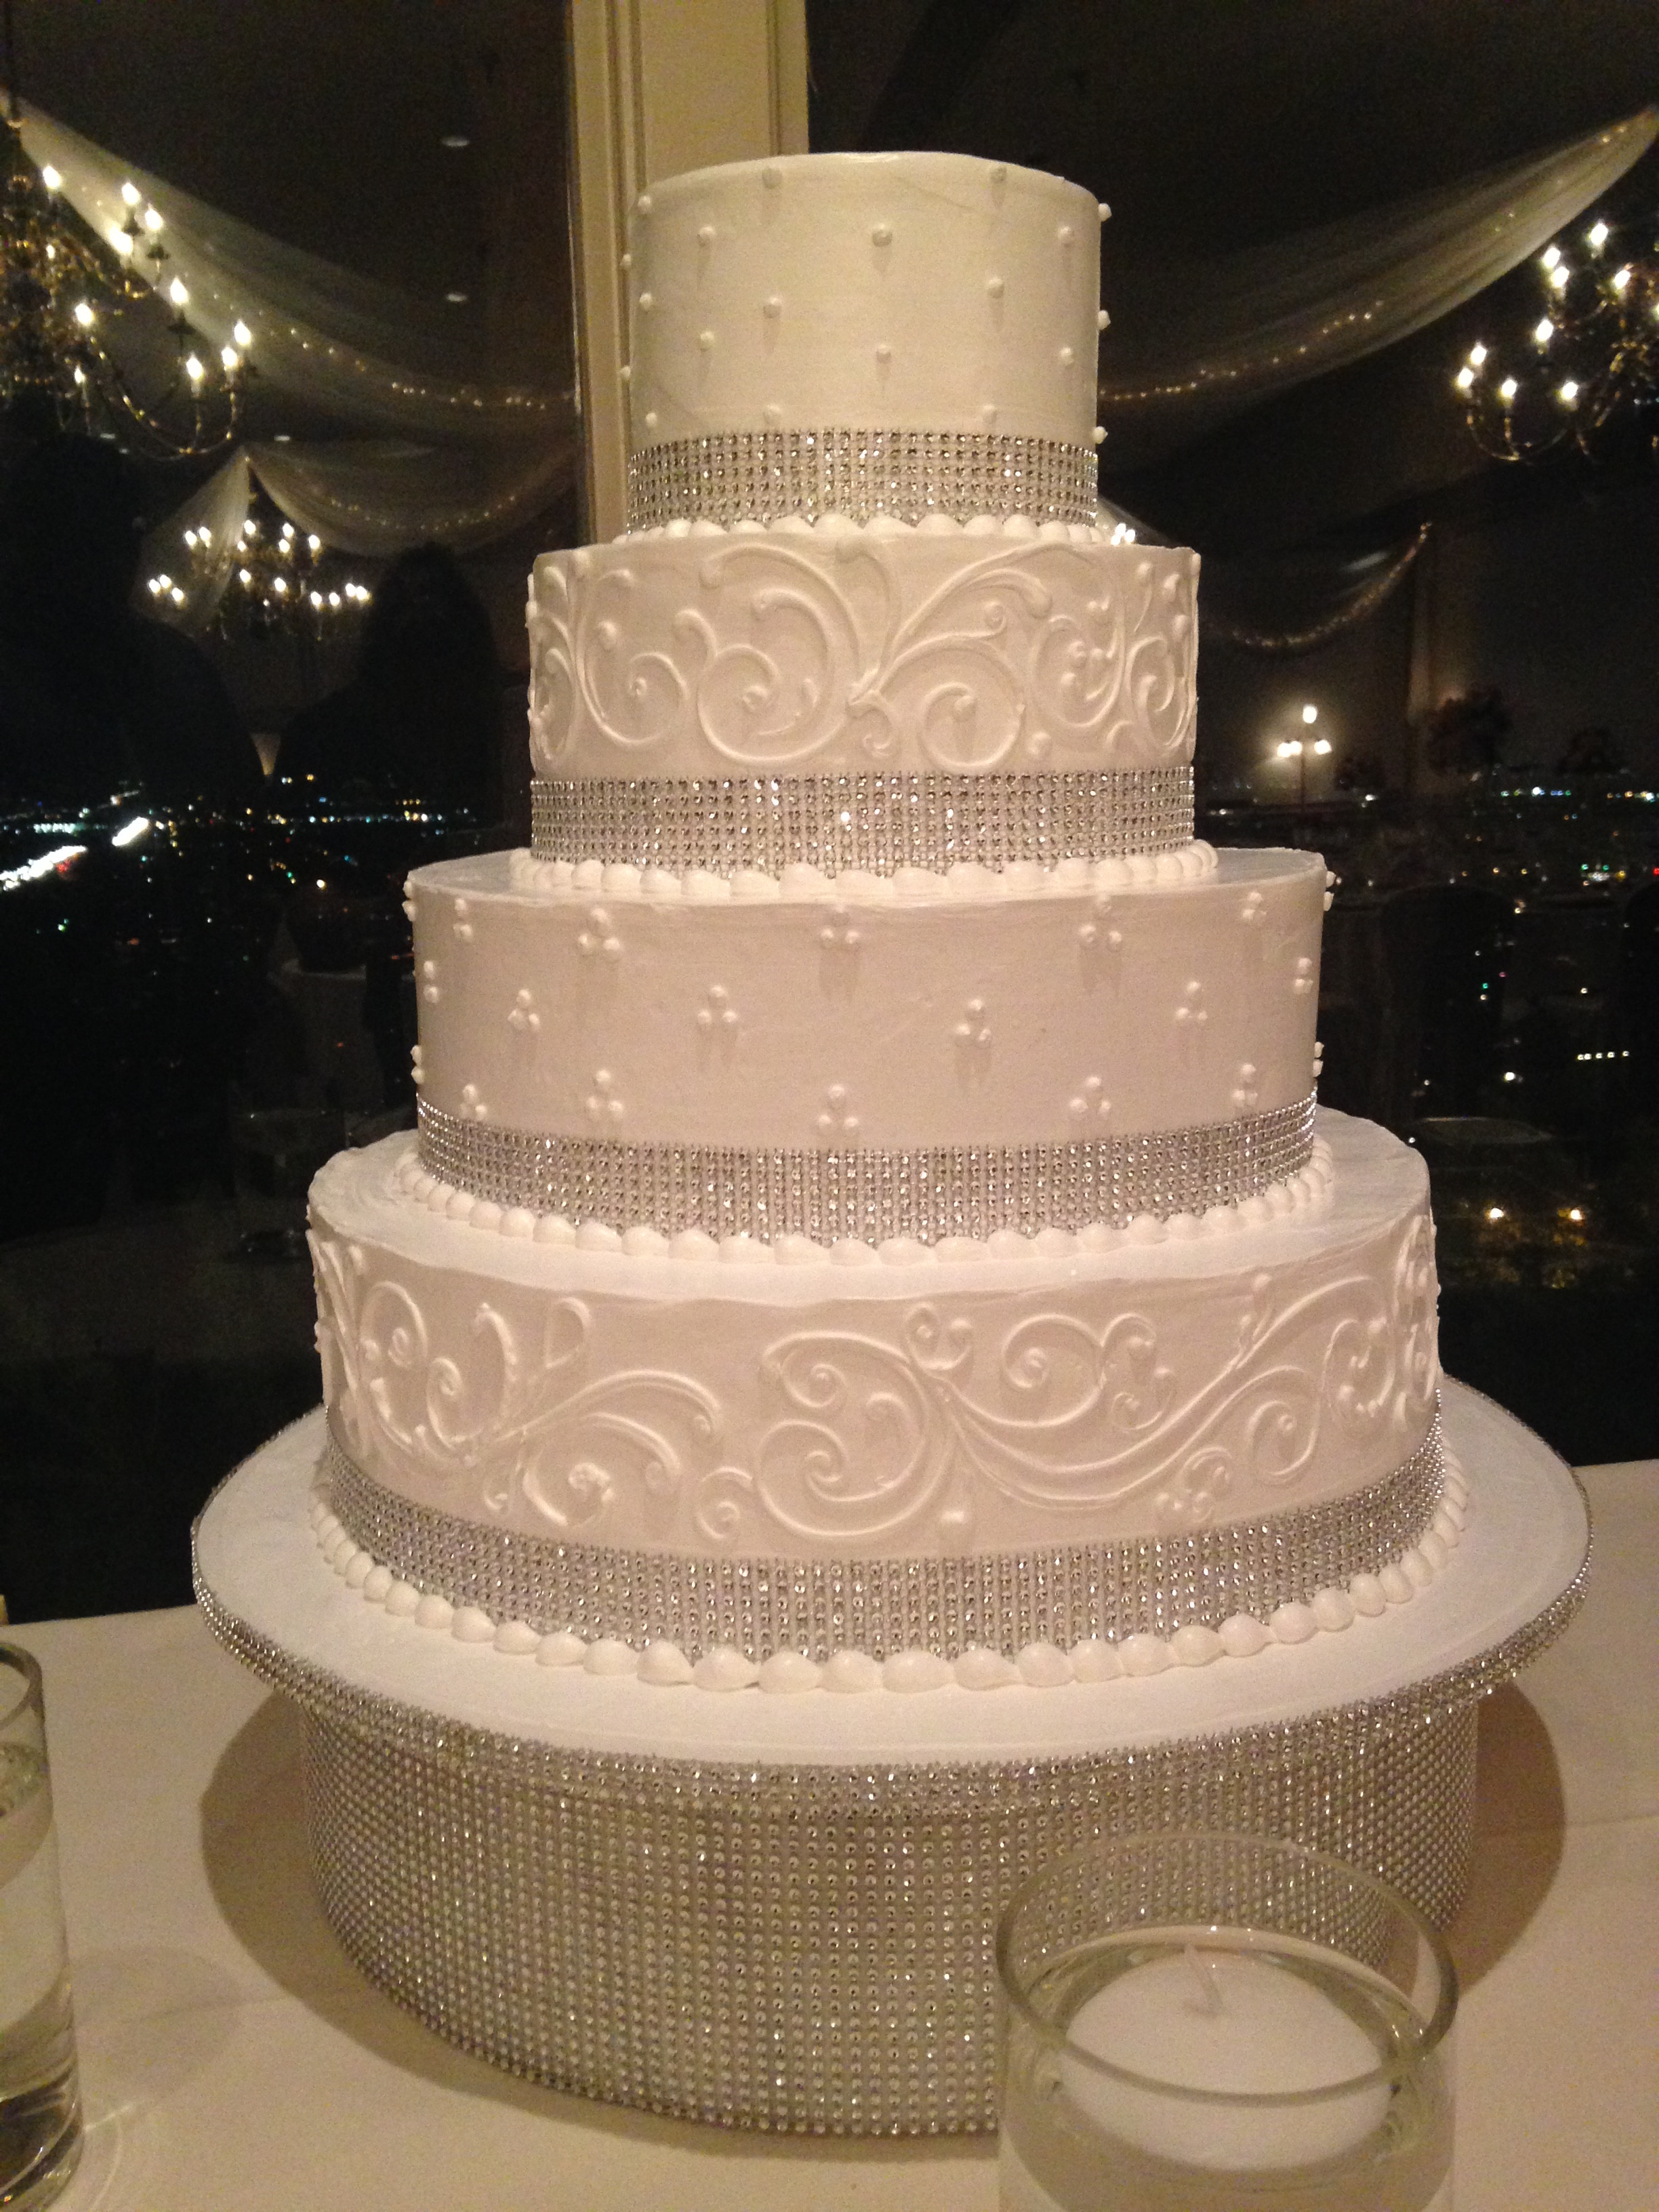 Wedding Cakes With Bling  White wedding cake with bling